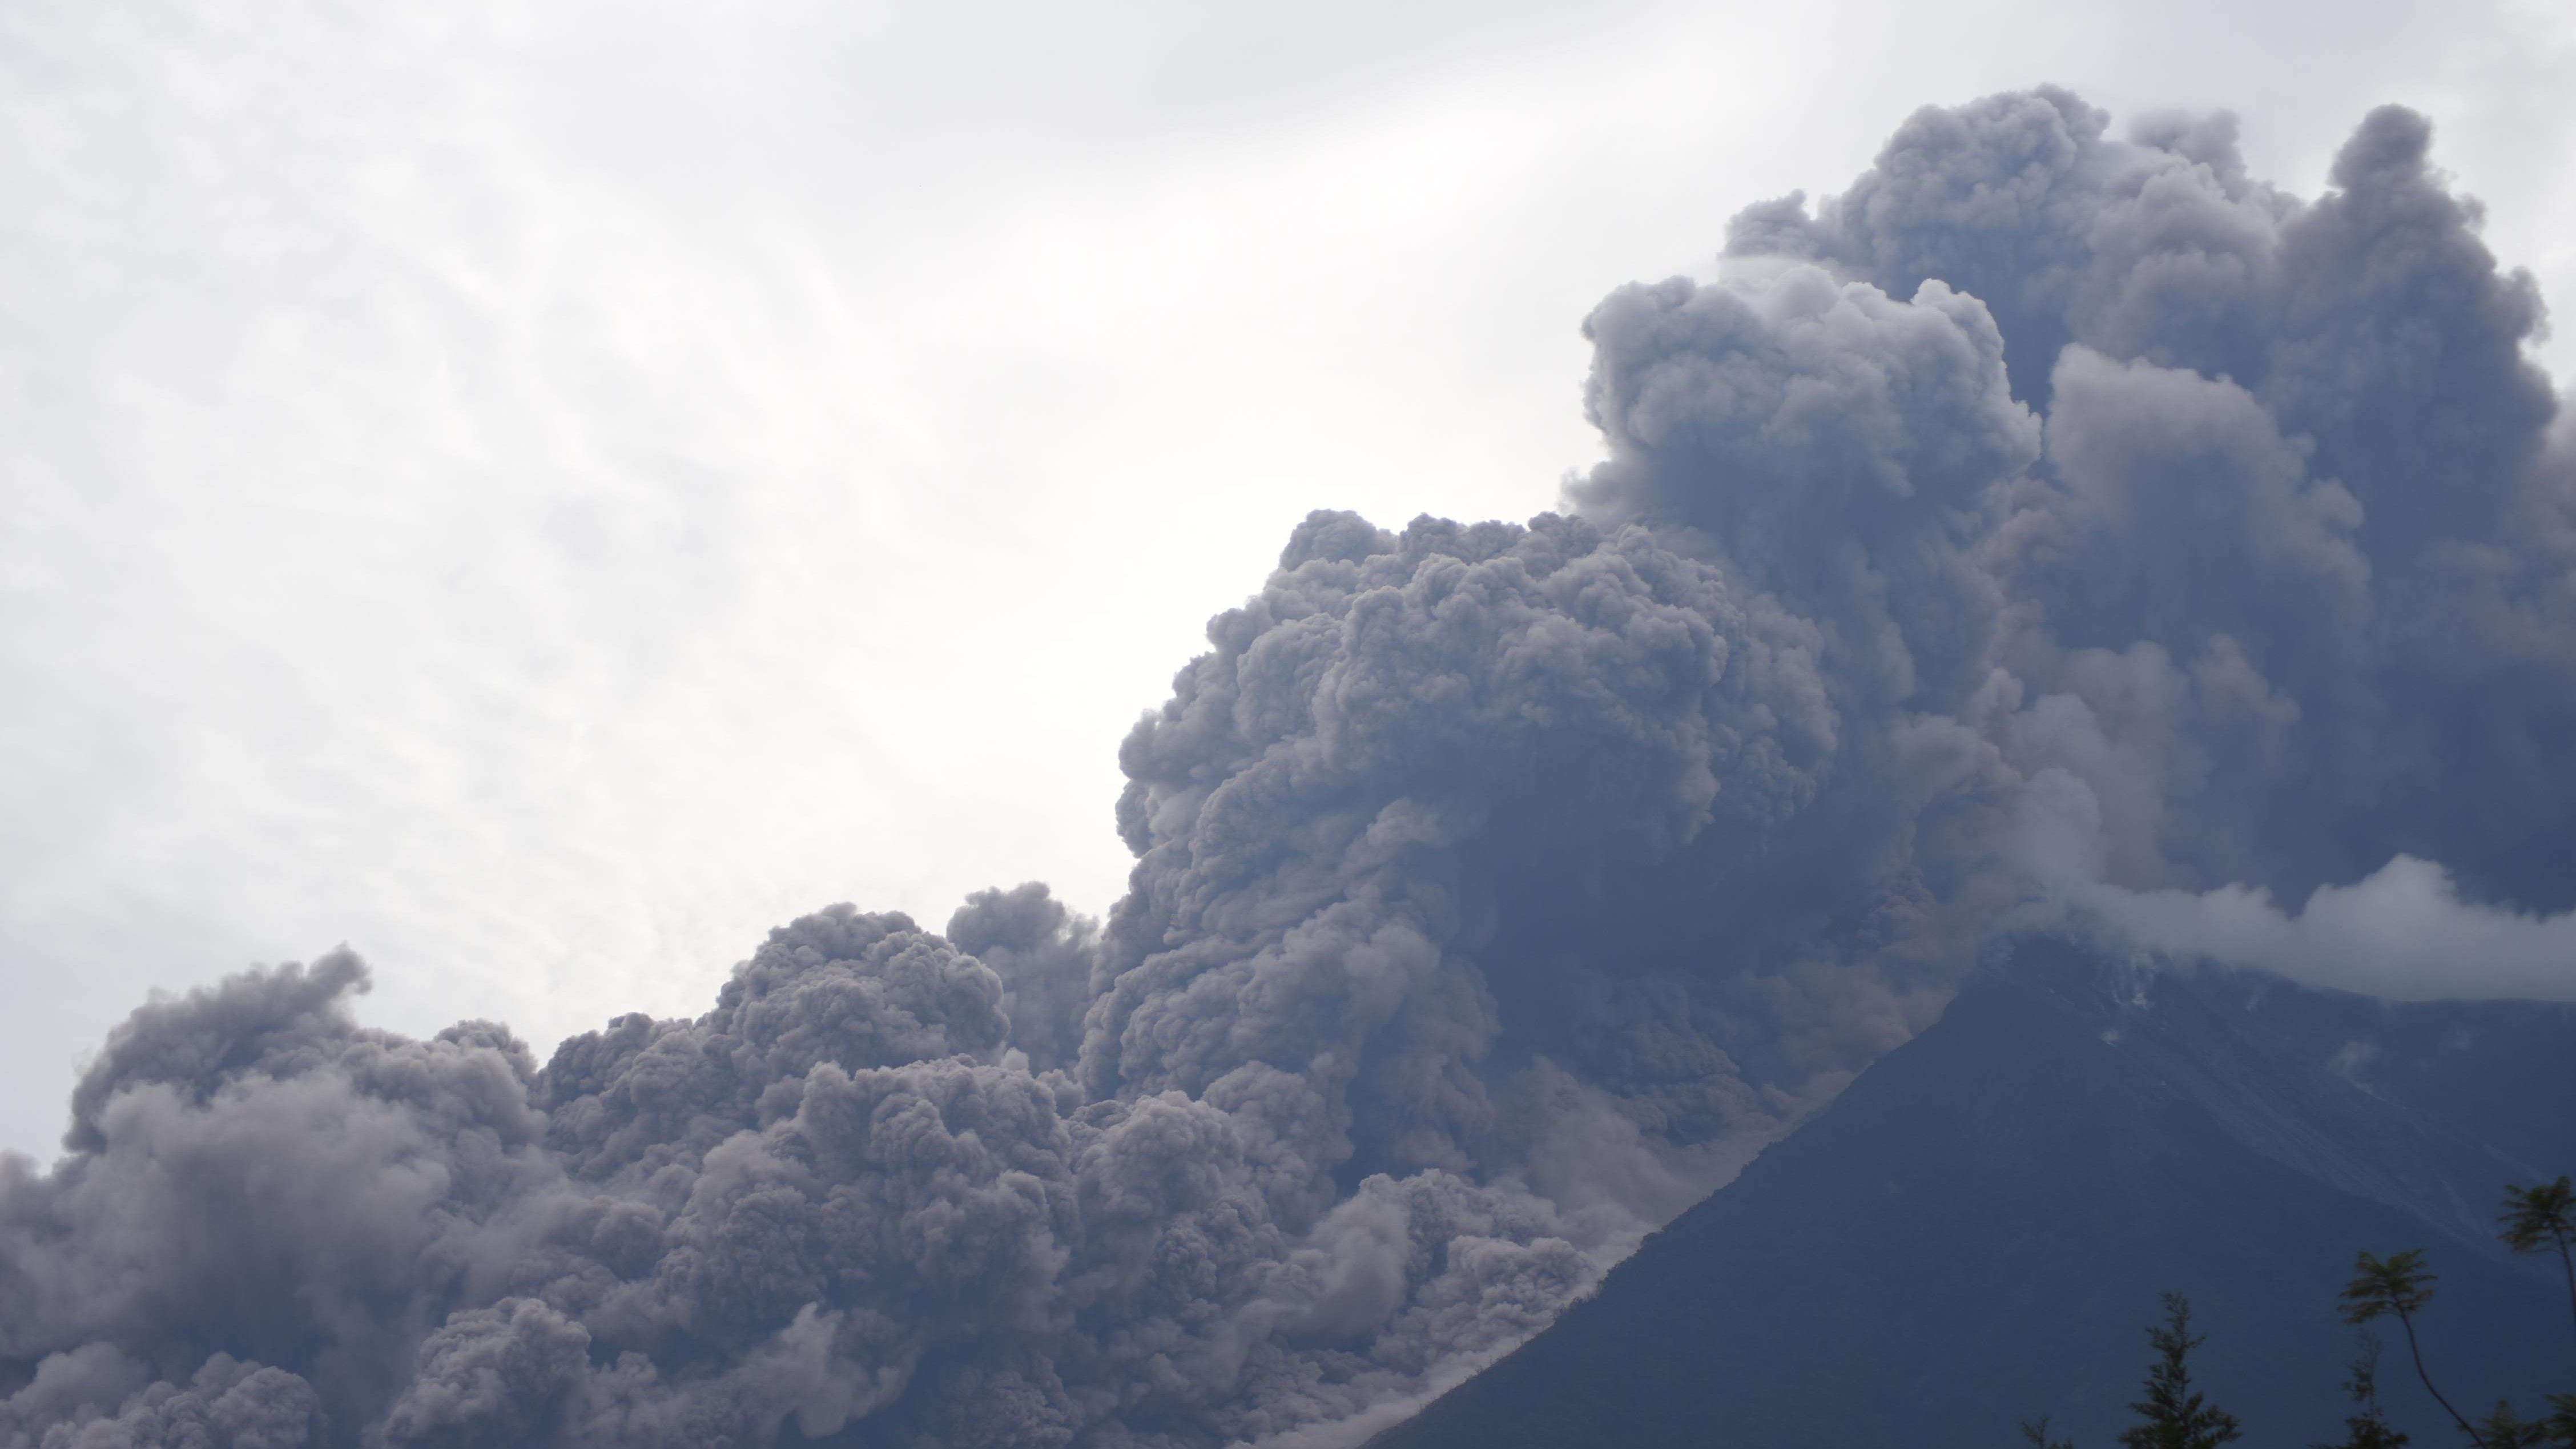 The Fuego Volcano in eruption, seen from Alotenango municipality, Sacatepequez department, about 40 miles southwest of Guatemala City.